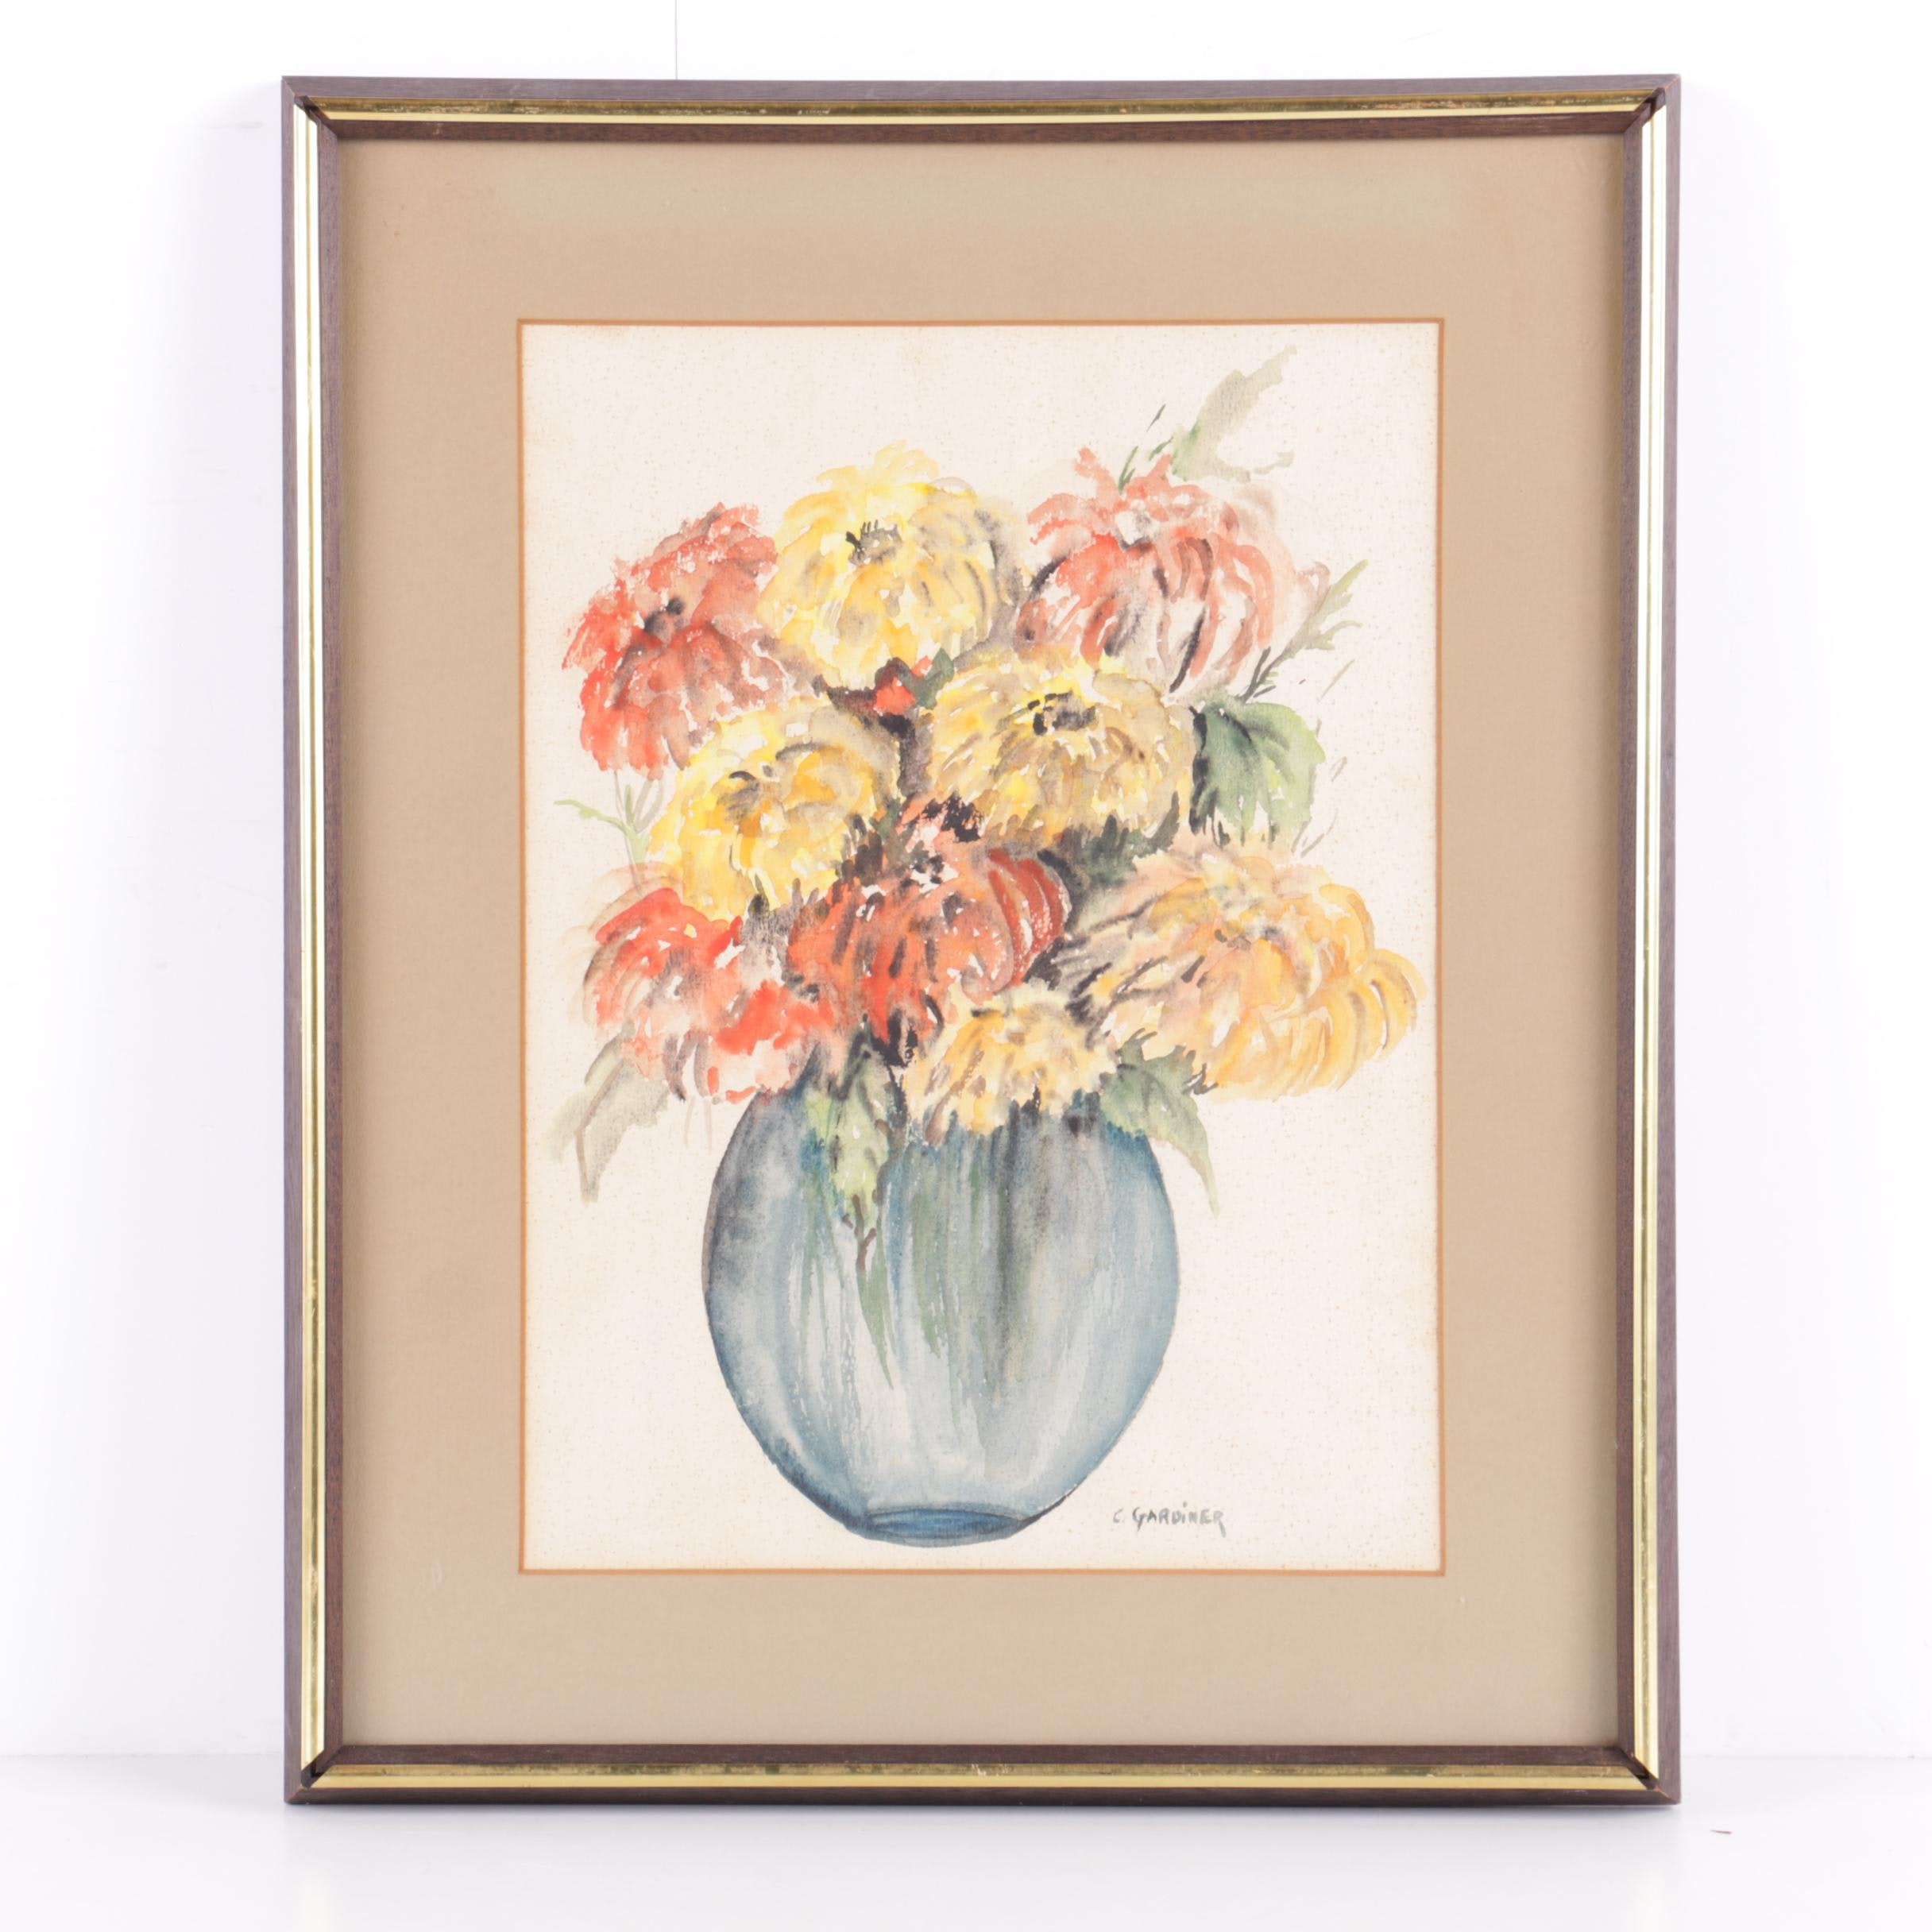 C. Gardiner Watercolor Painting on Paper of a Floral Bouquet